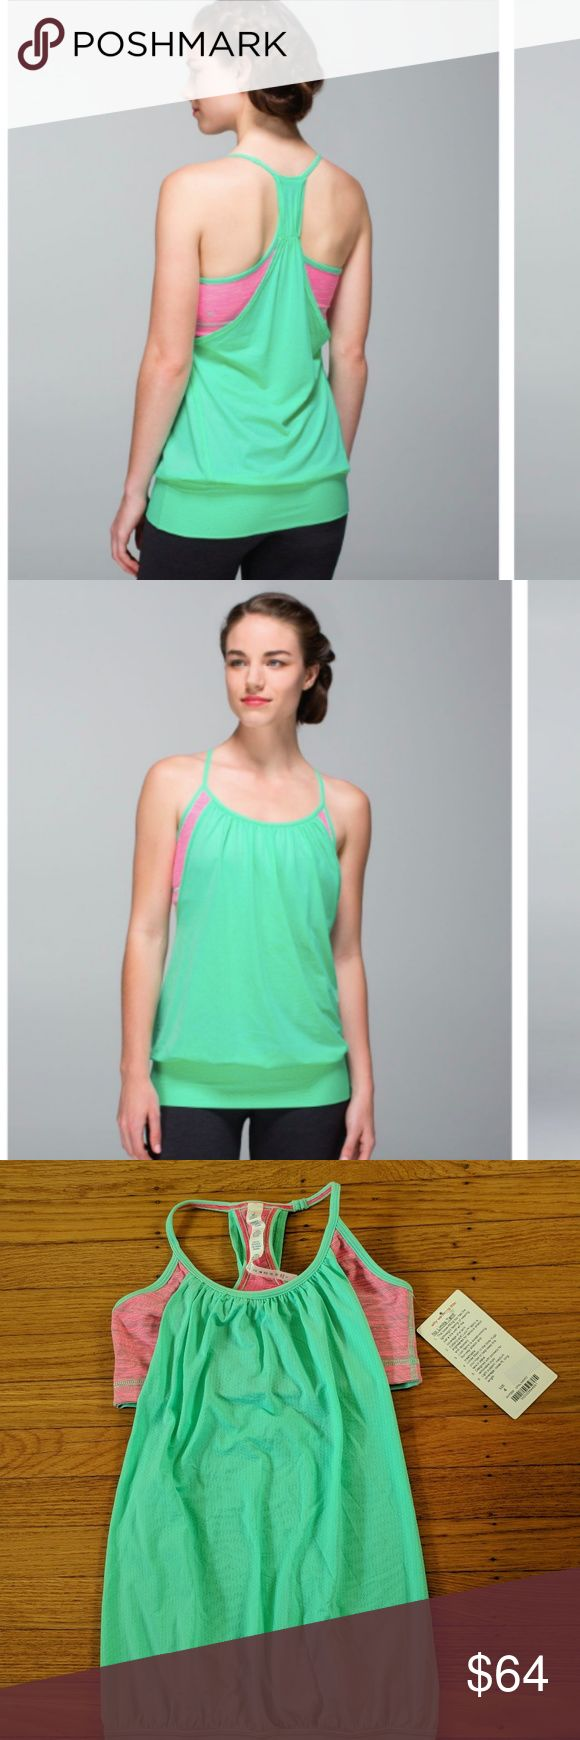 Lululemon No Limits Tank NWT Opal Pink Sz 4 Gorgeous new no limits tank w/ tags attached in opal and we are from space neon pink opal colors. Built in bra (no pads) with flowy body make this tank super flattering and cooling for your yoga or other workouts. Band at the bottom keeps tank from riding up.  These tanks are no longer made so they are RARE! No trades please. Make me an offer! Bundle and save - check out my other Lulu listings (I have two more no limits tanks for sale) :) lululemon…